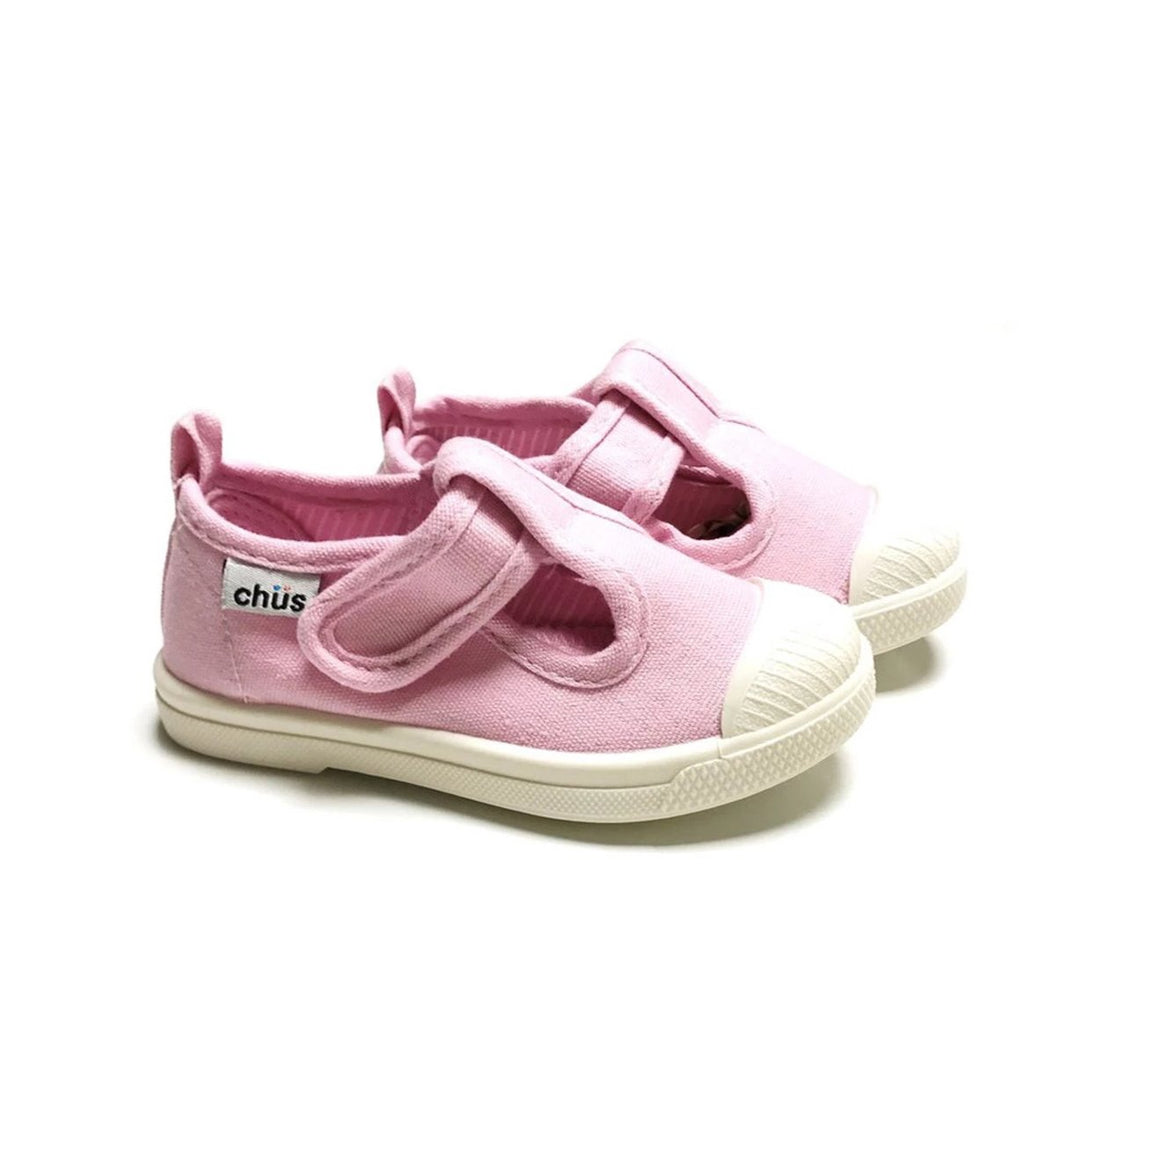 Chus Chris Canvas Velcro Sneaker in Light Pink